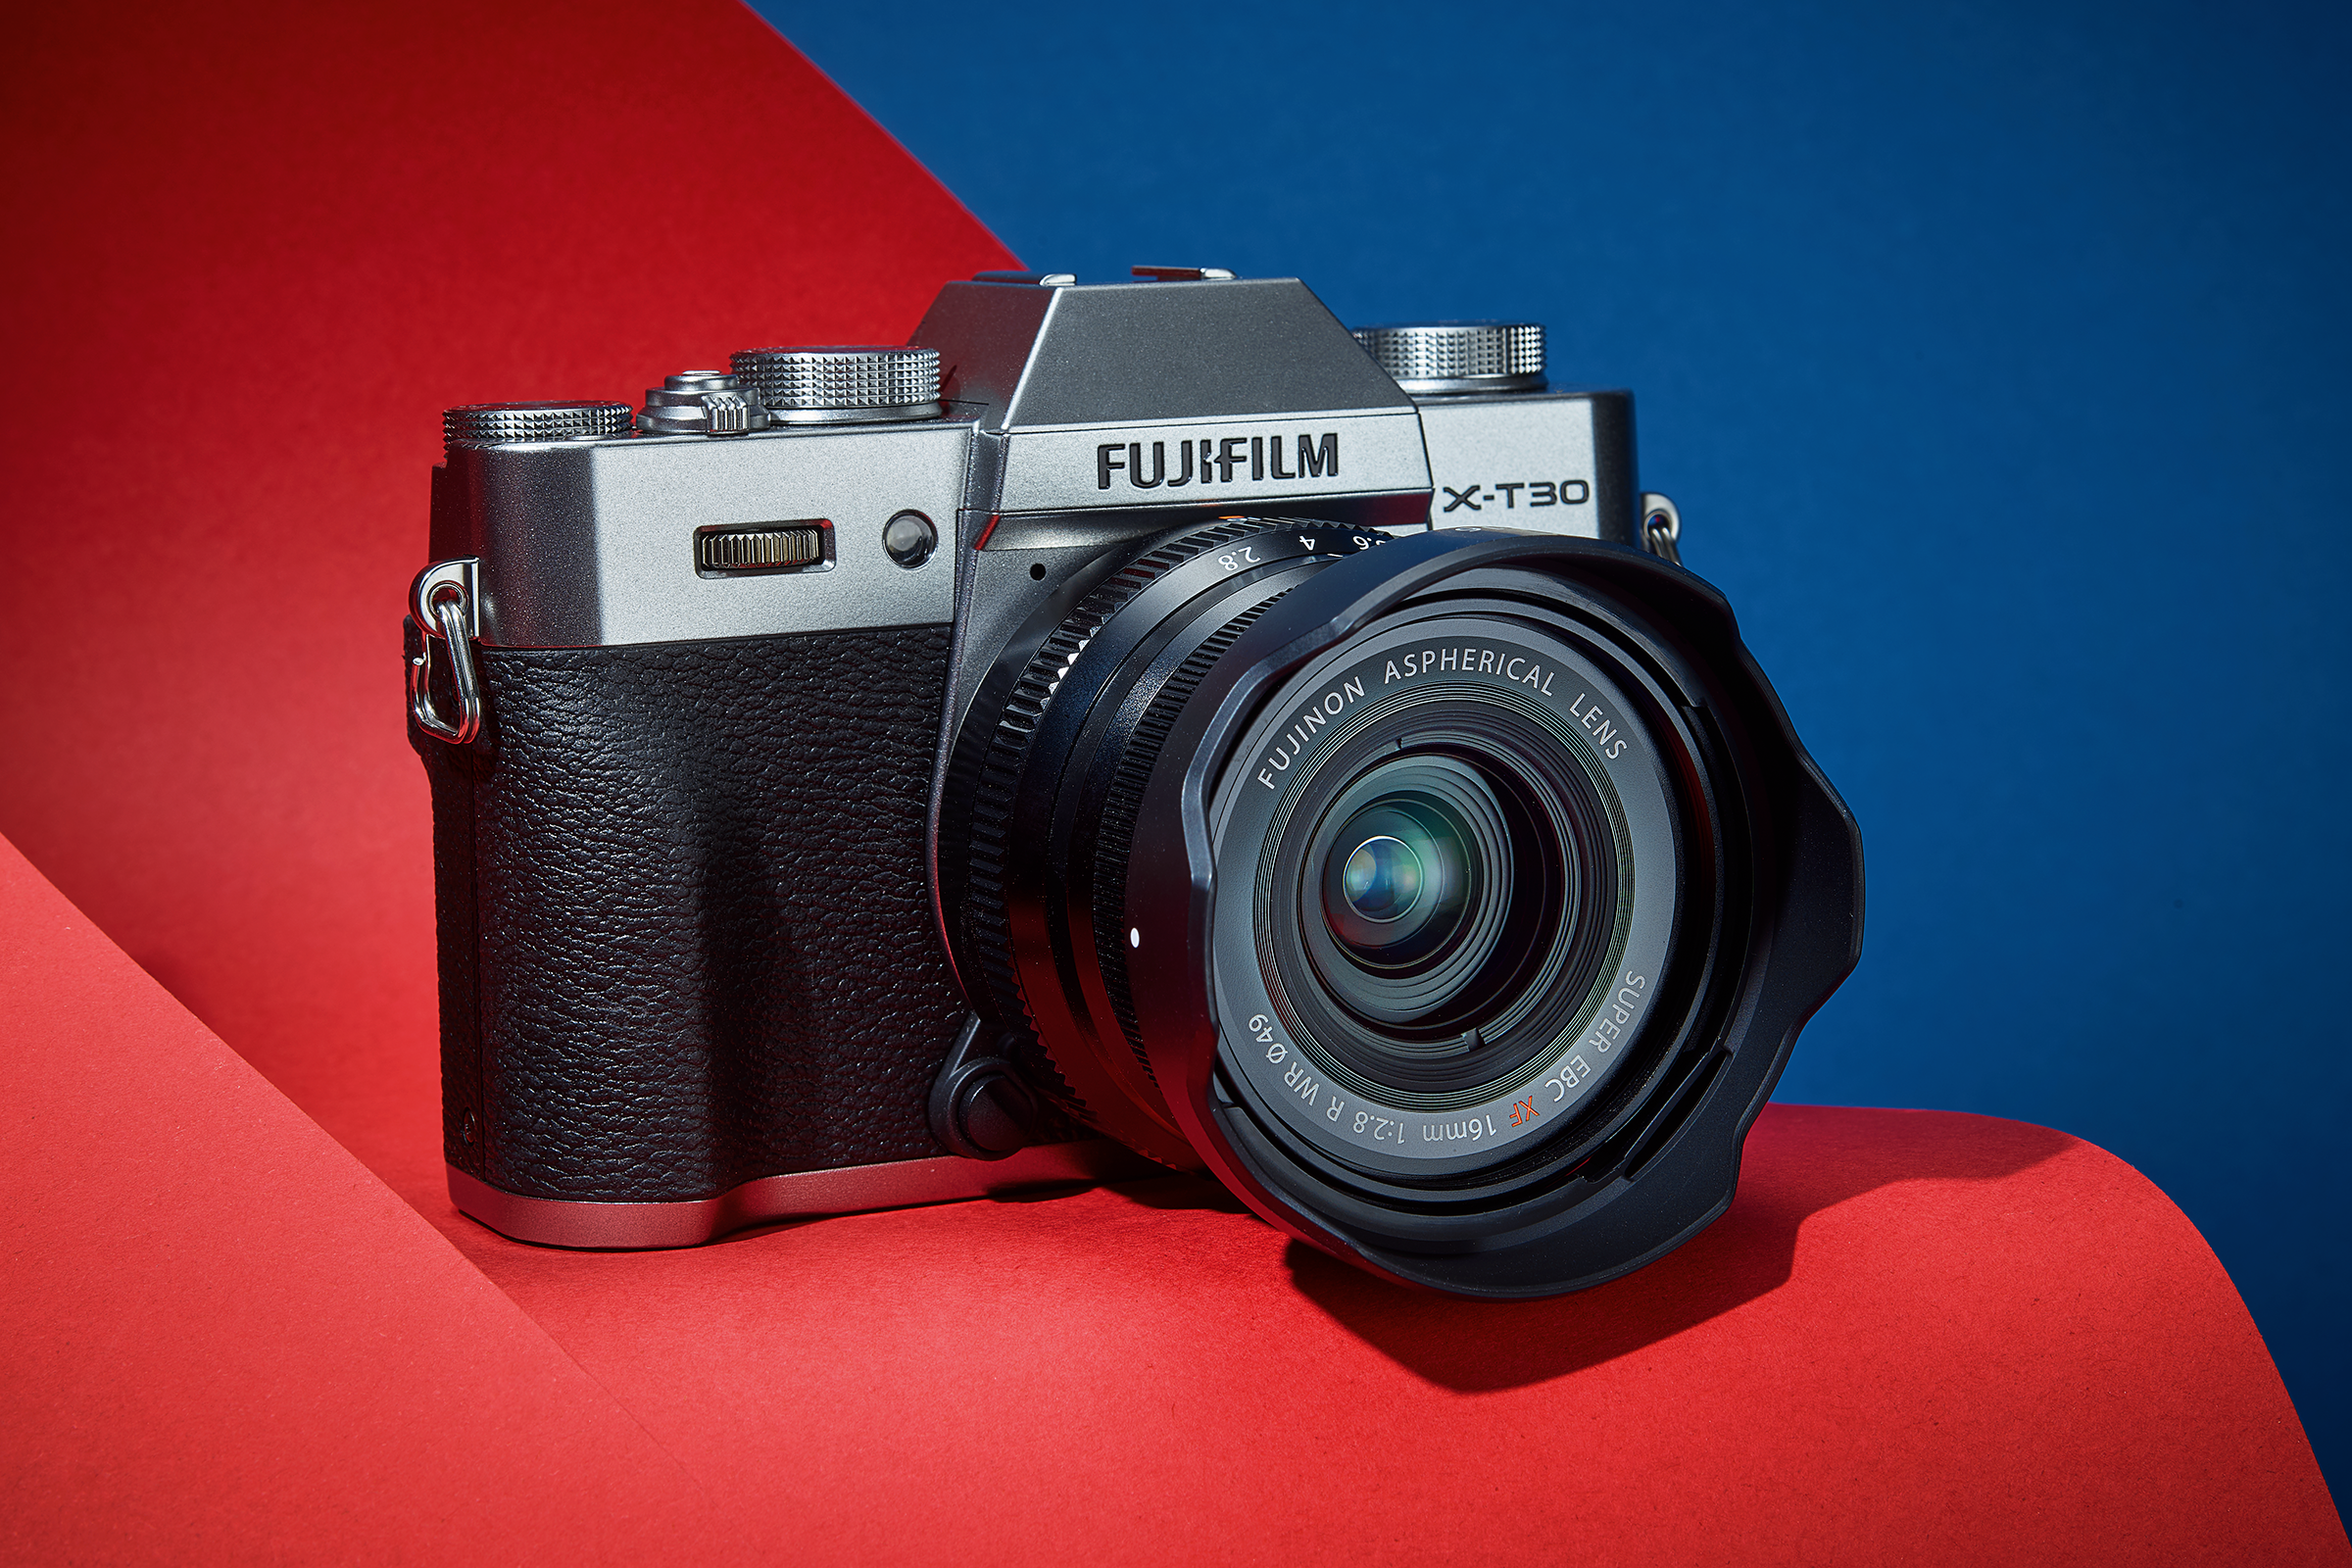 Fujifilm X-T30 performance review: How good are the X Series' lenses?